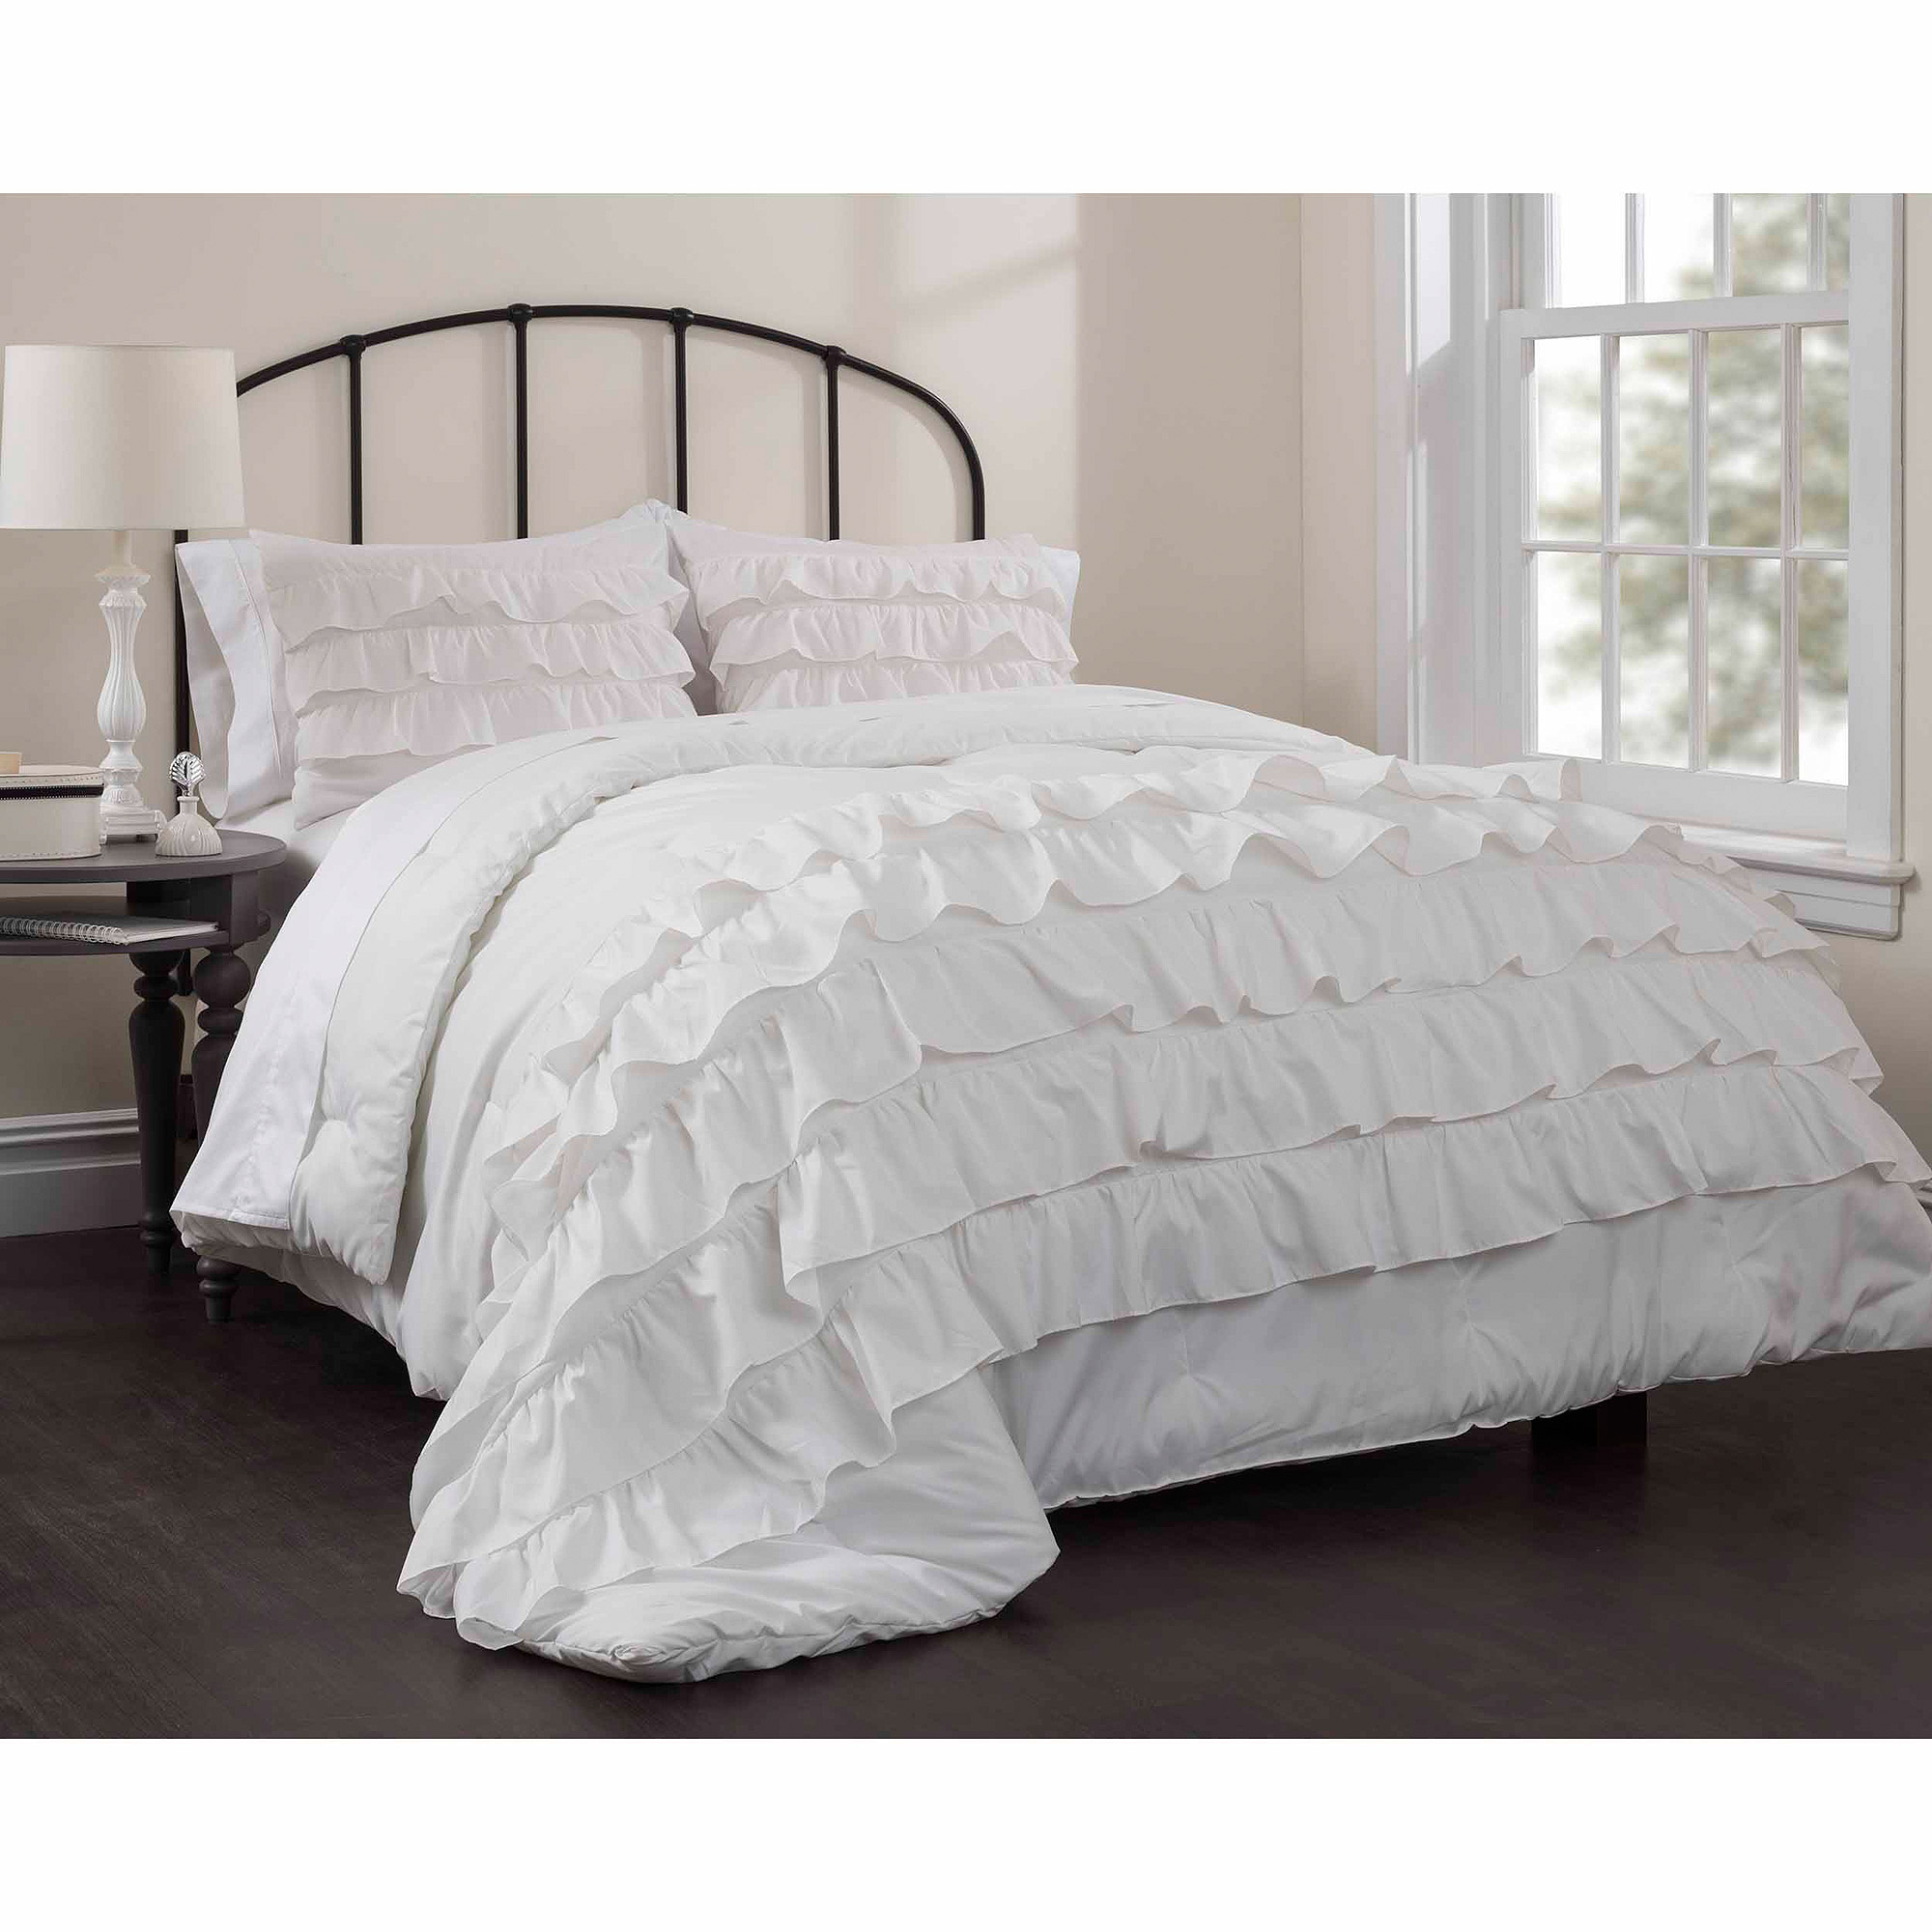 Excellent white comforter sets for charming bedroom ideas with white comforter sets queen